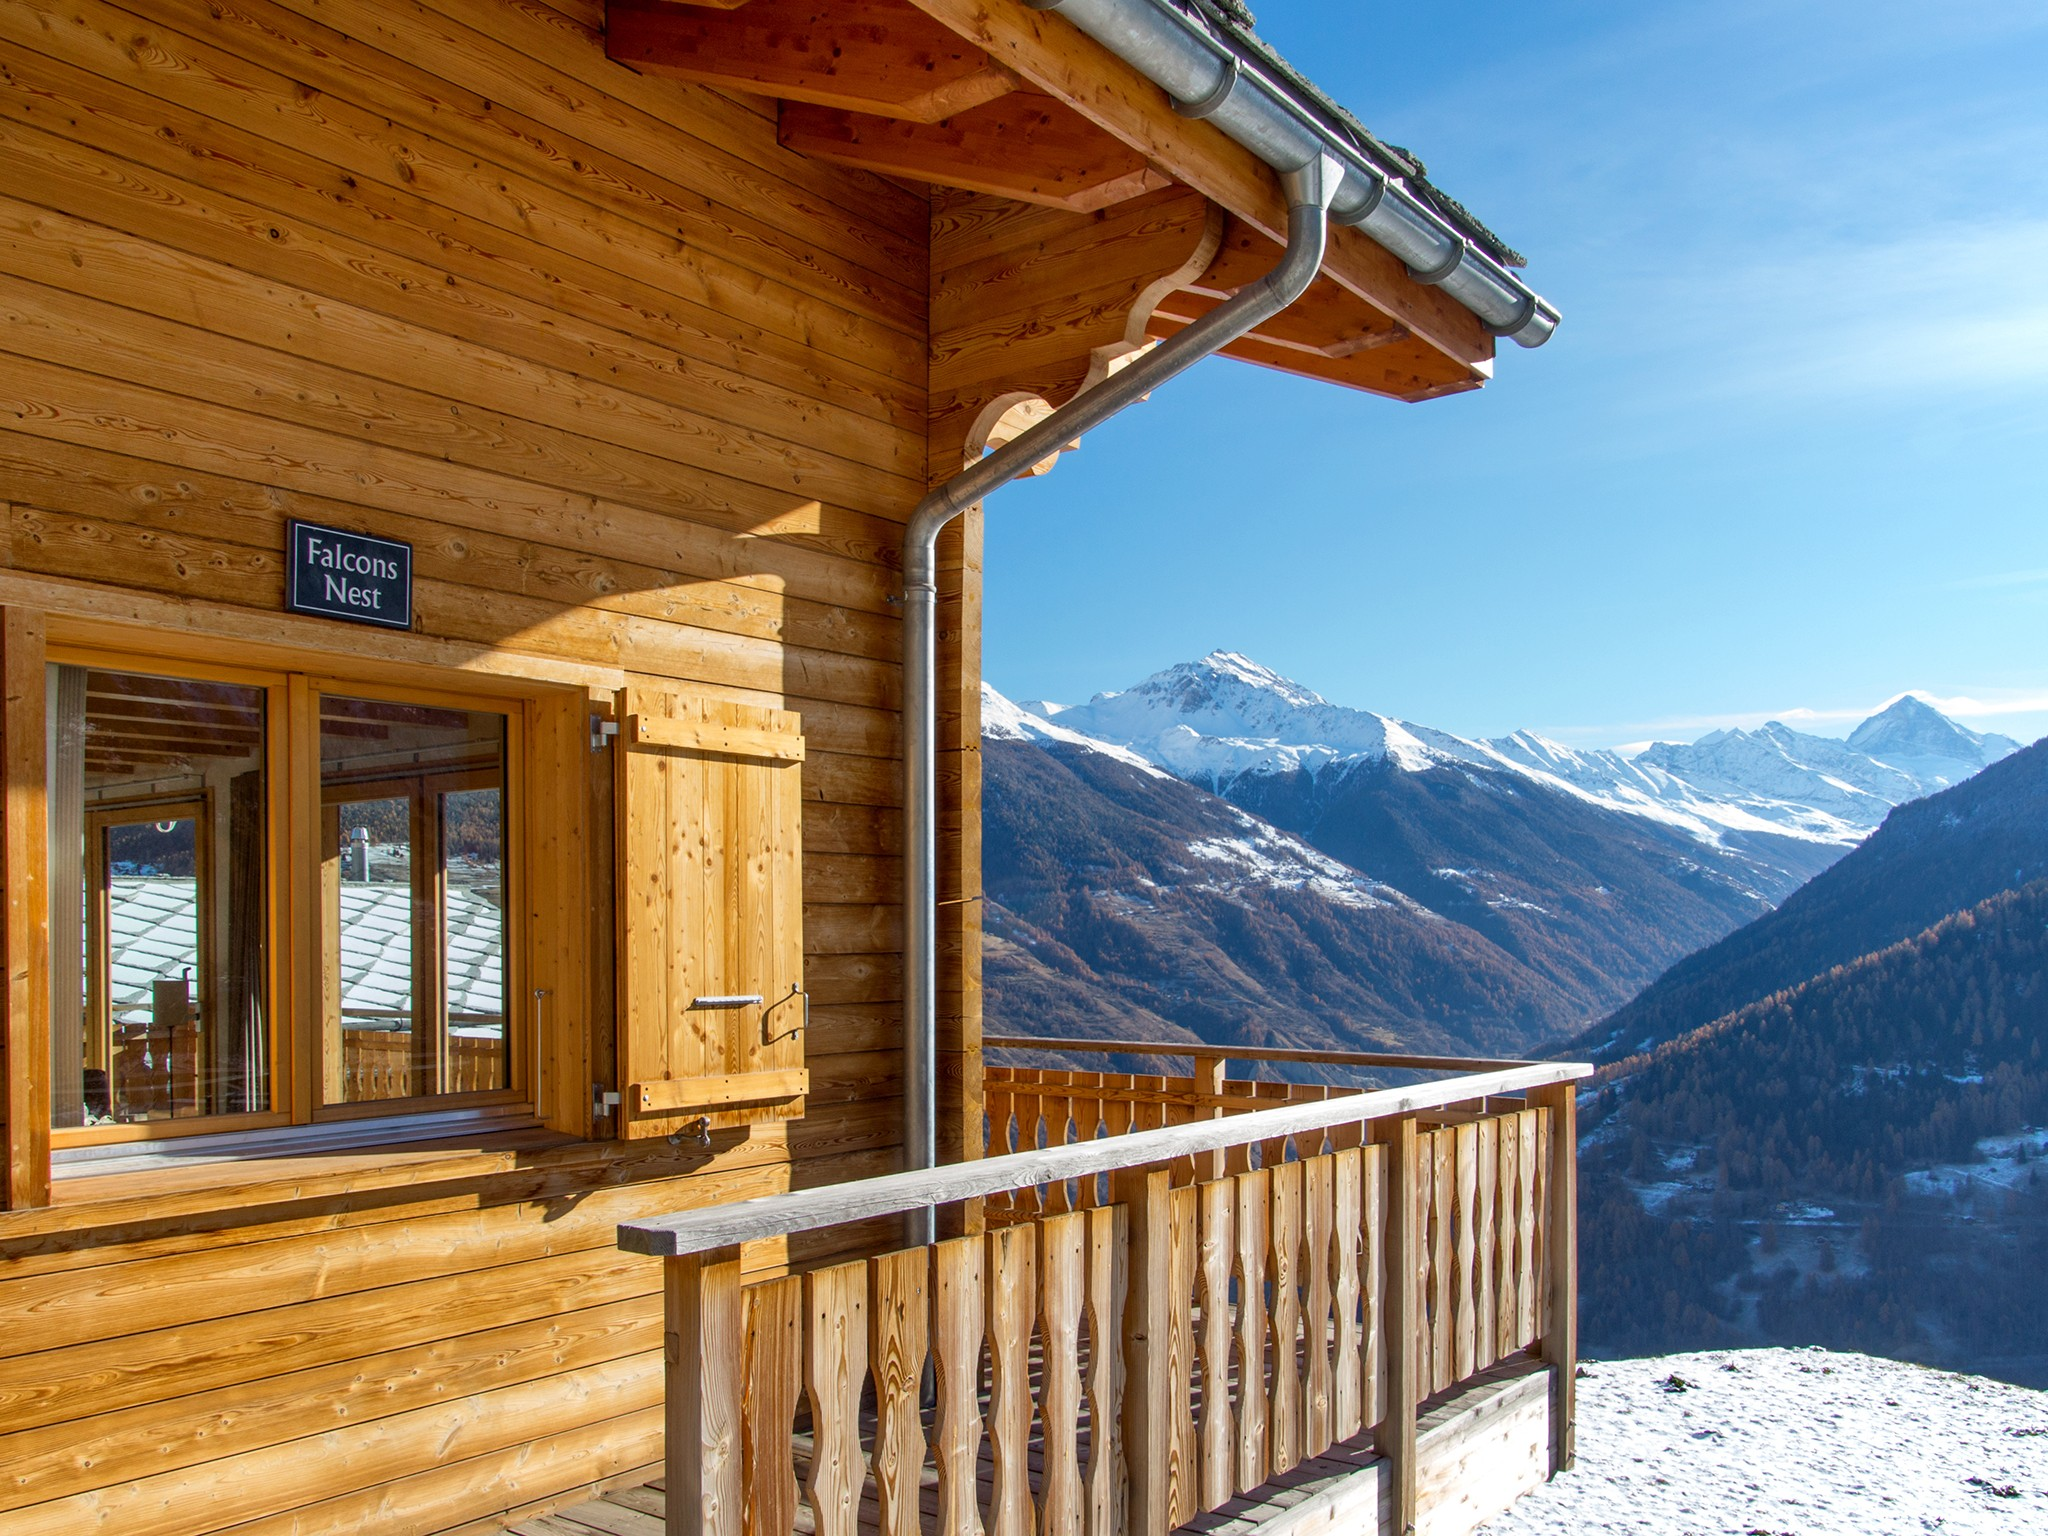 Chalet Falcons Nest - Panoramablick